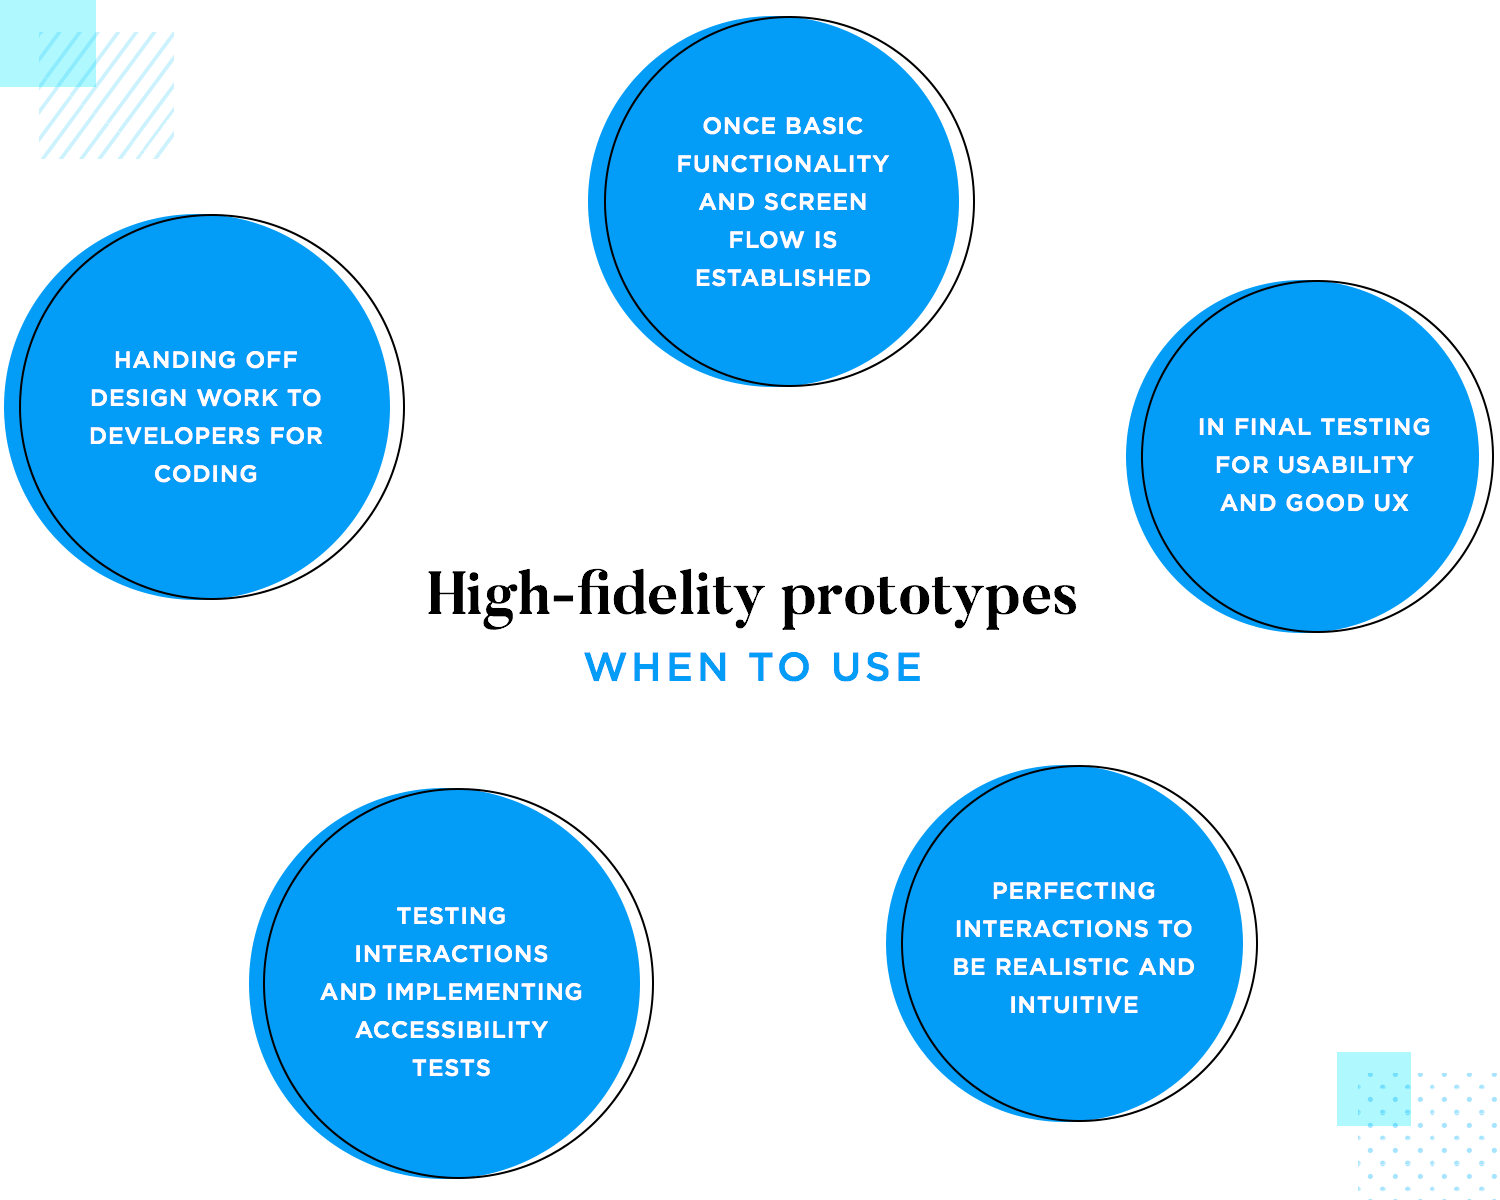 High fidelity prototypes improve design-handoff